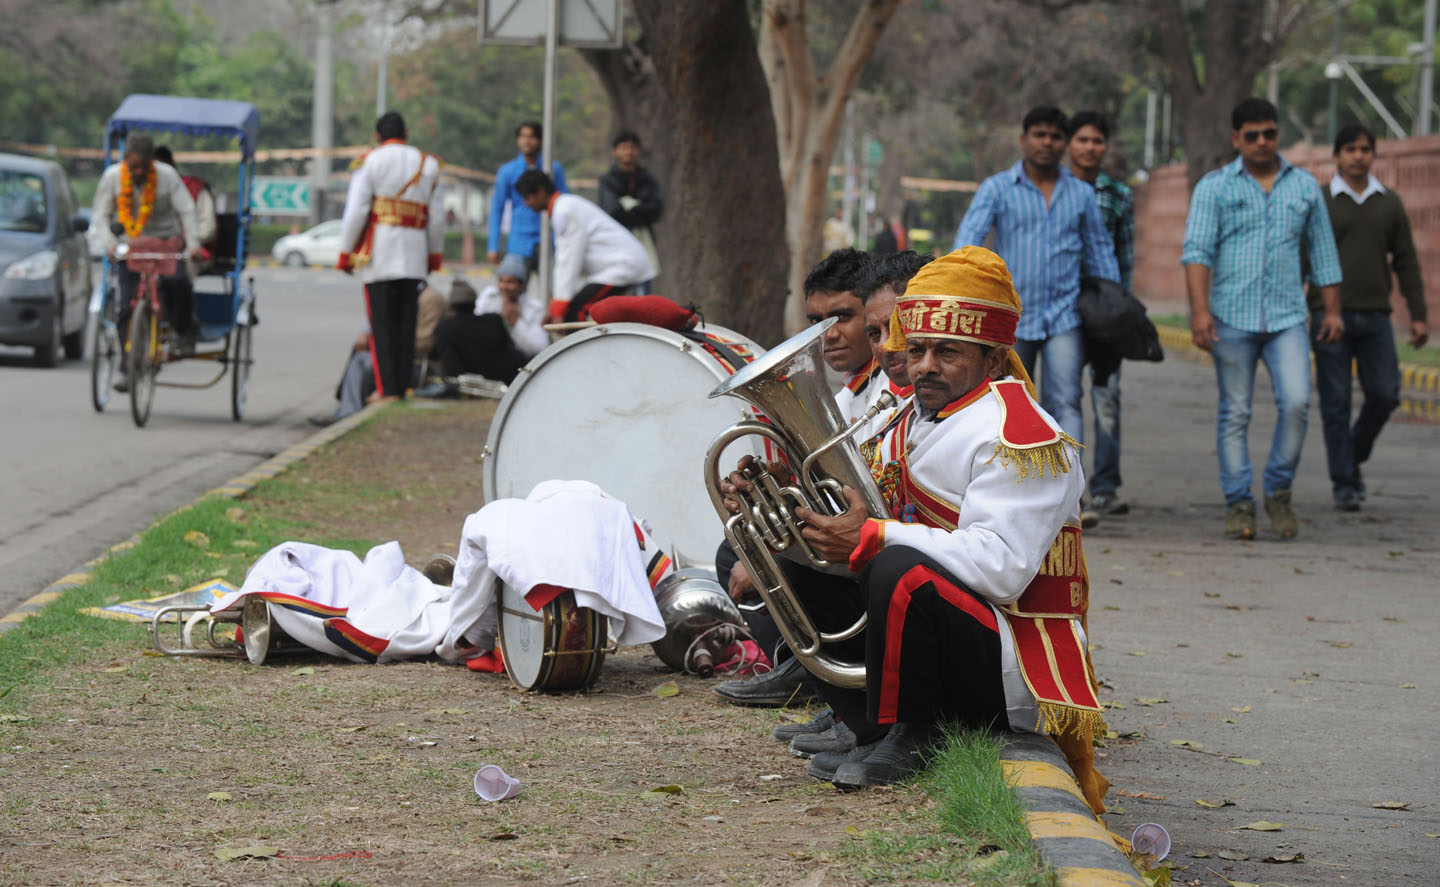 Members Of An Indian Wedding Band Wait On A Road Divider In New Delhi Feb